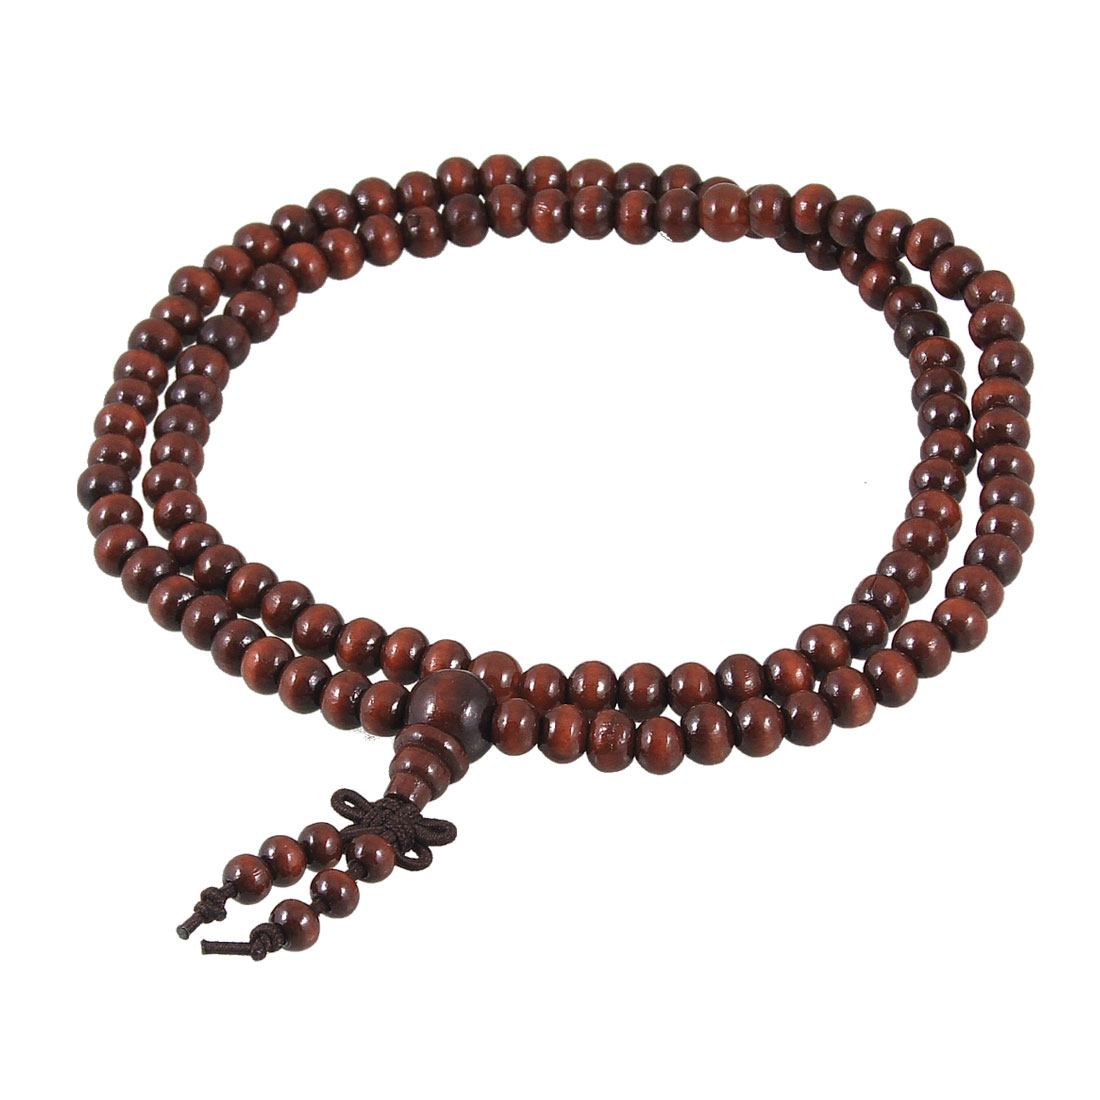 62cm Girth Buddhist Prayer Burgundy Wood Beads Elastic Necklace